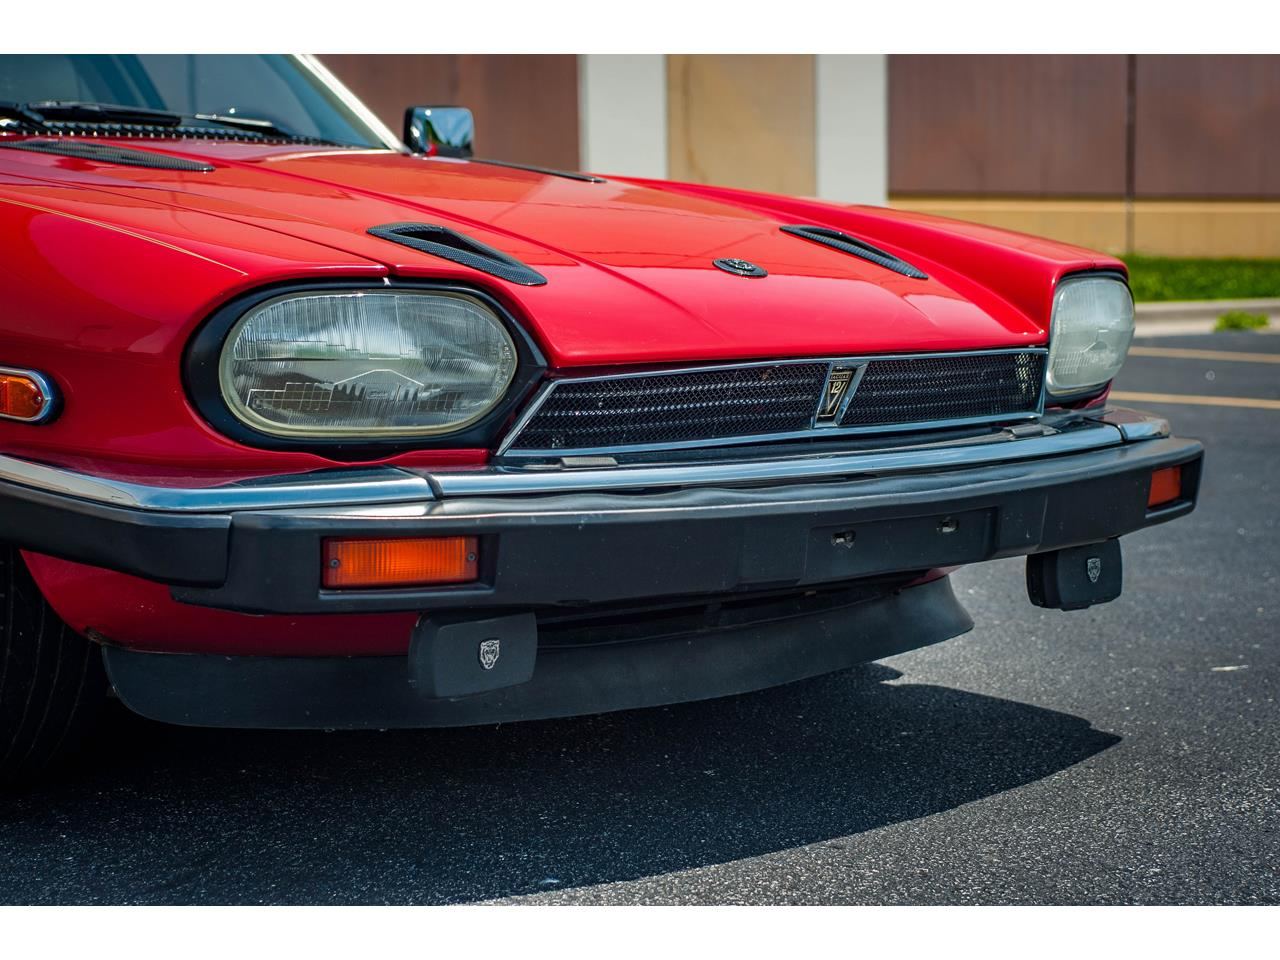 Large Picture of '89 Jaguar XJS located in Illinois - $20,000.00 Offered by Gateway Classic Cars - St. Louis - QB9L